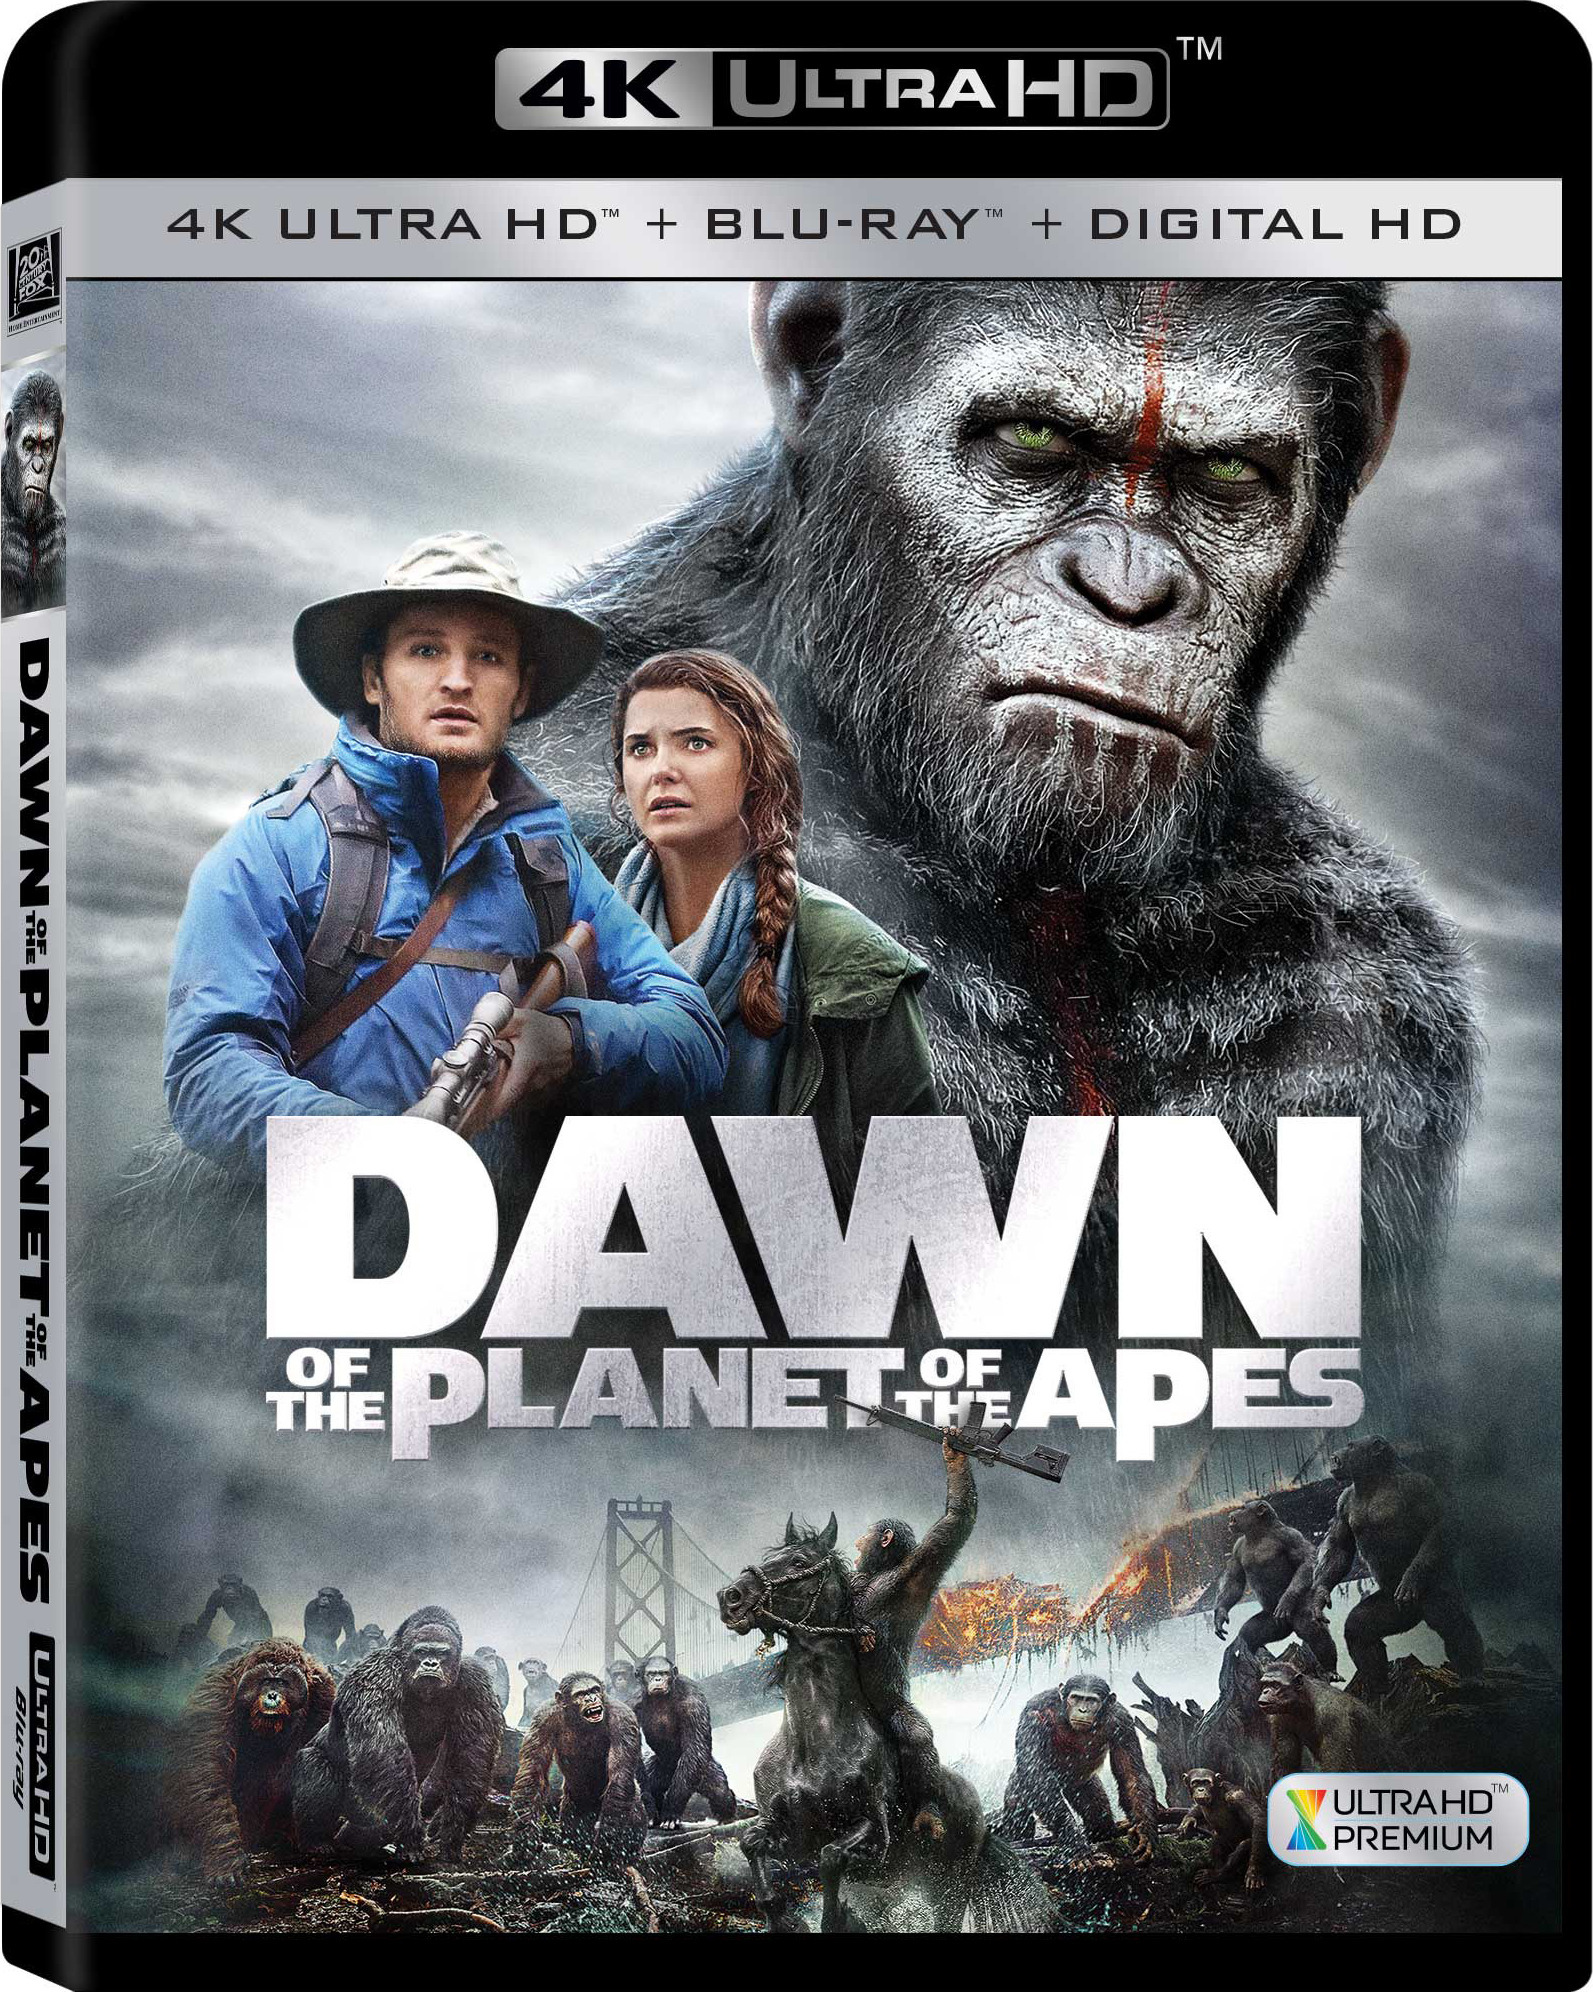 Dawn of the Planet of the Apes 4K (2014) UHD Ultra HD Blu-ray